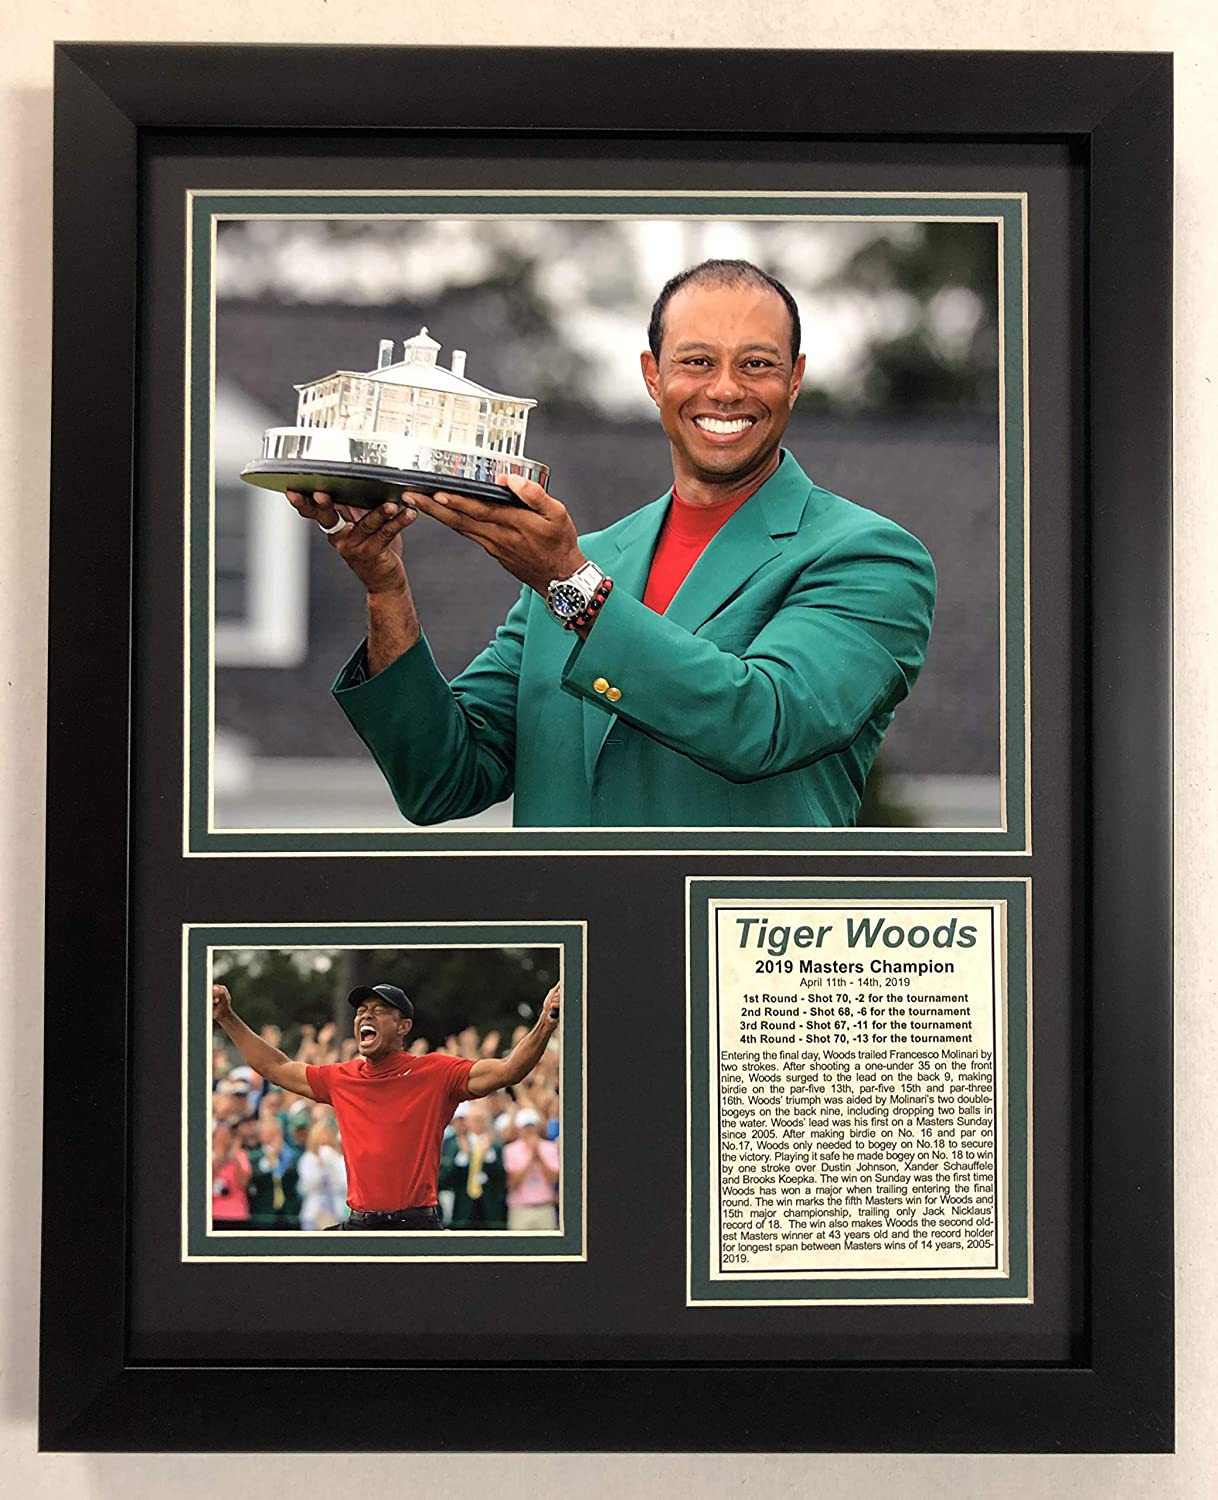 PGA Tiger Woods Legends Never Die 2019 Masters Champion Framed Double Matted Photos